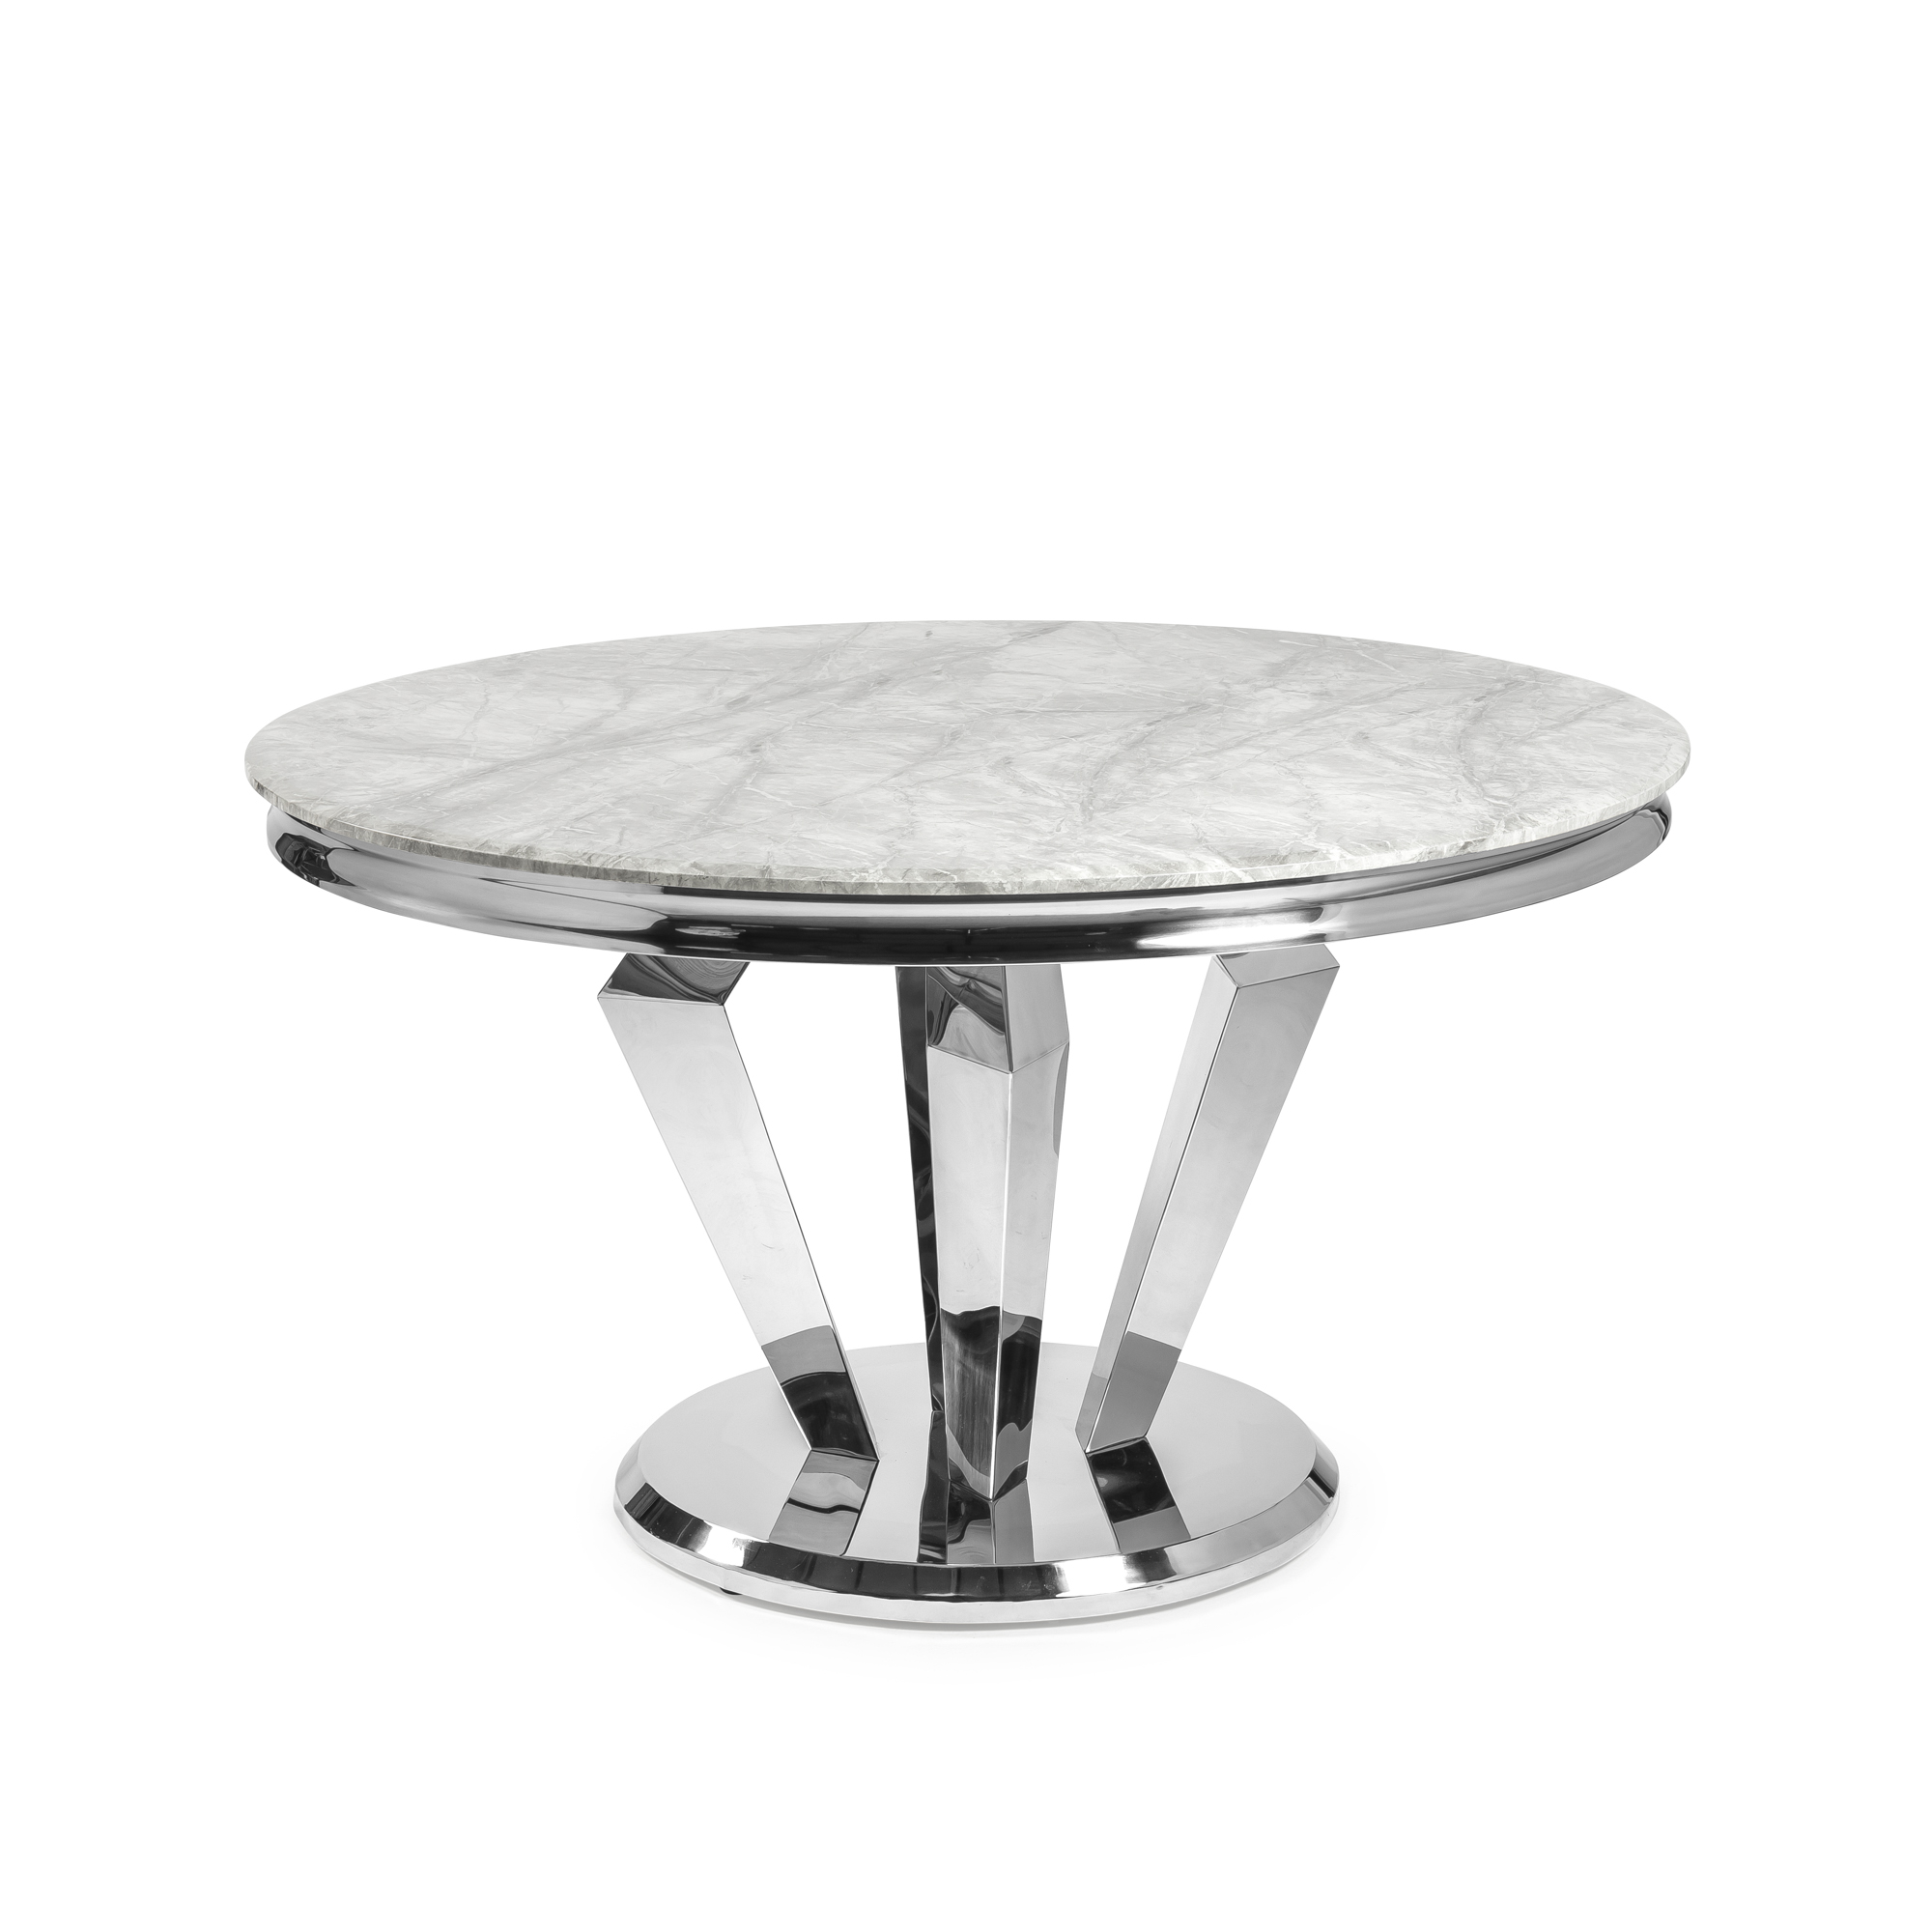 1.3M Circular Stainless Steel Dining Table with Grey Marble Top